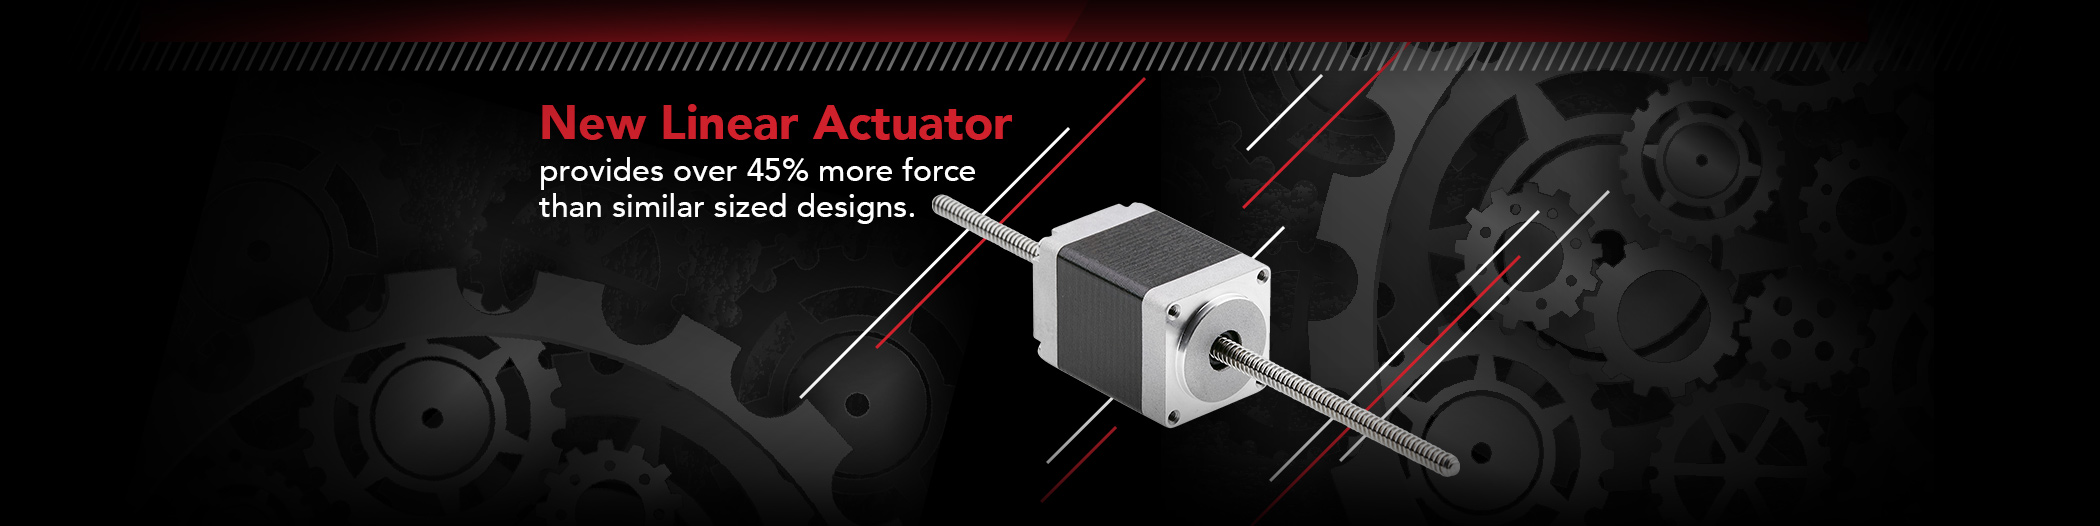 New Linear Actuator provides over 45% more force than similar sized designs.